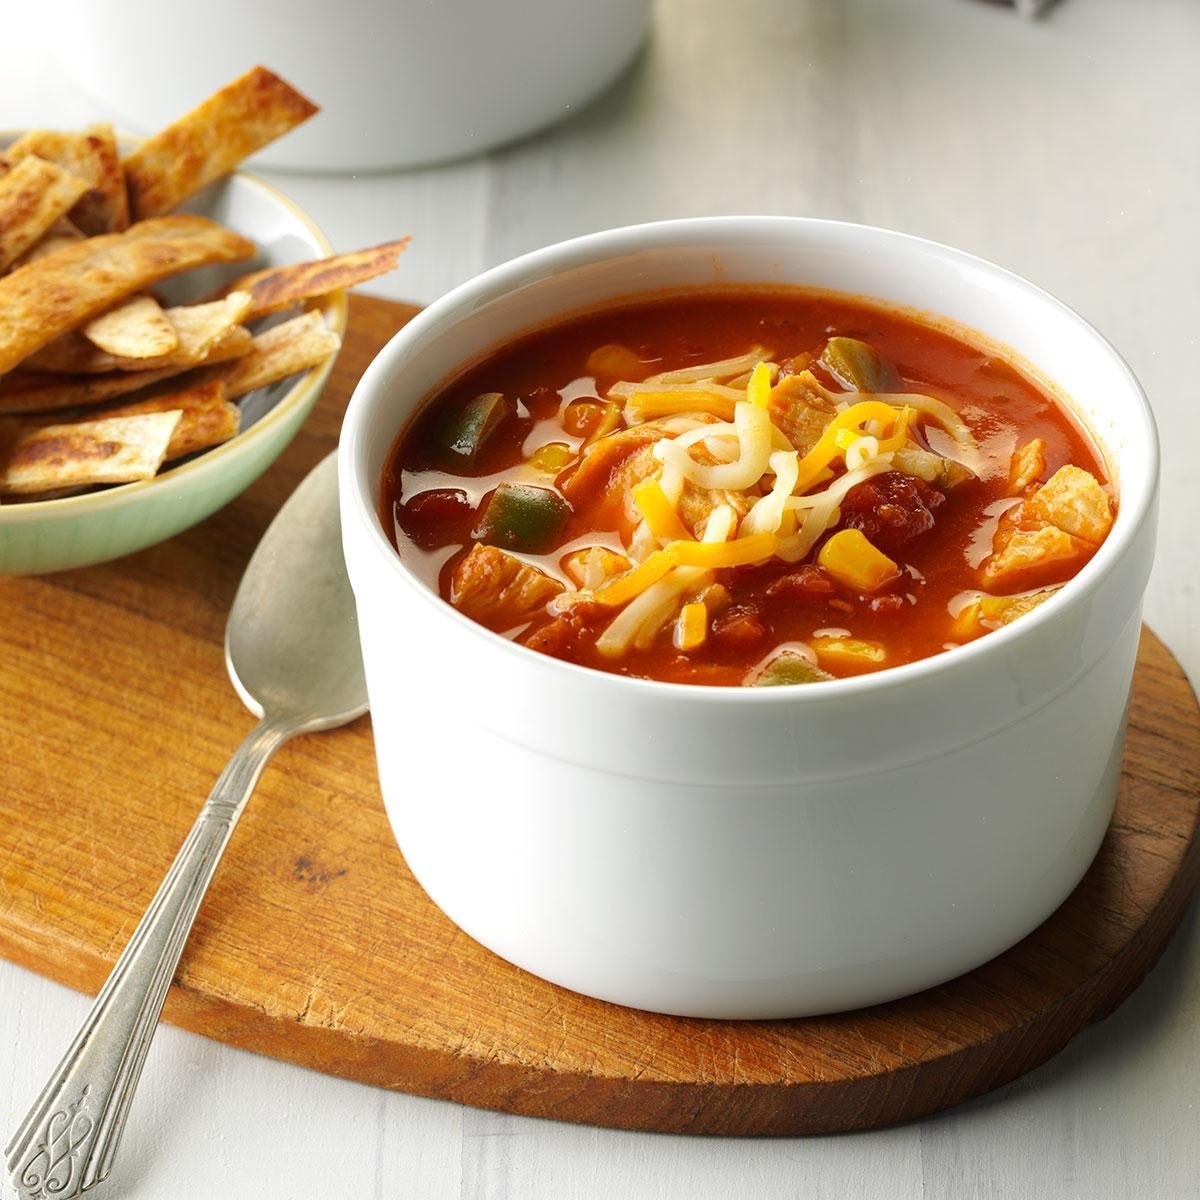 Inspired by: The Cheesecake Factory Spicy Tortilla Soup